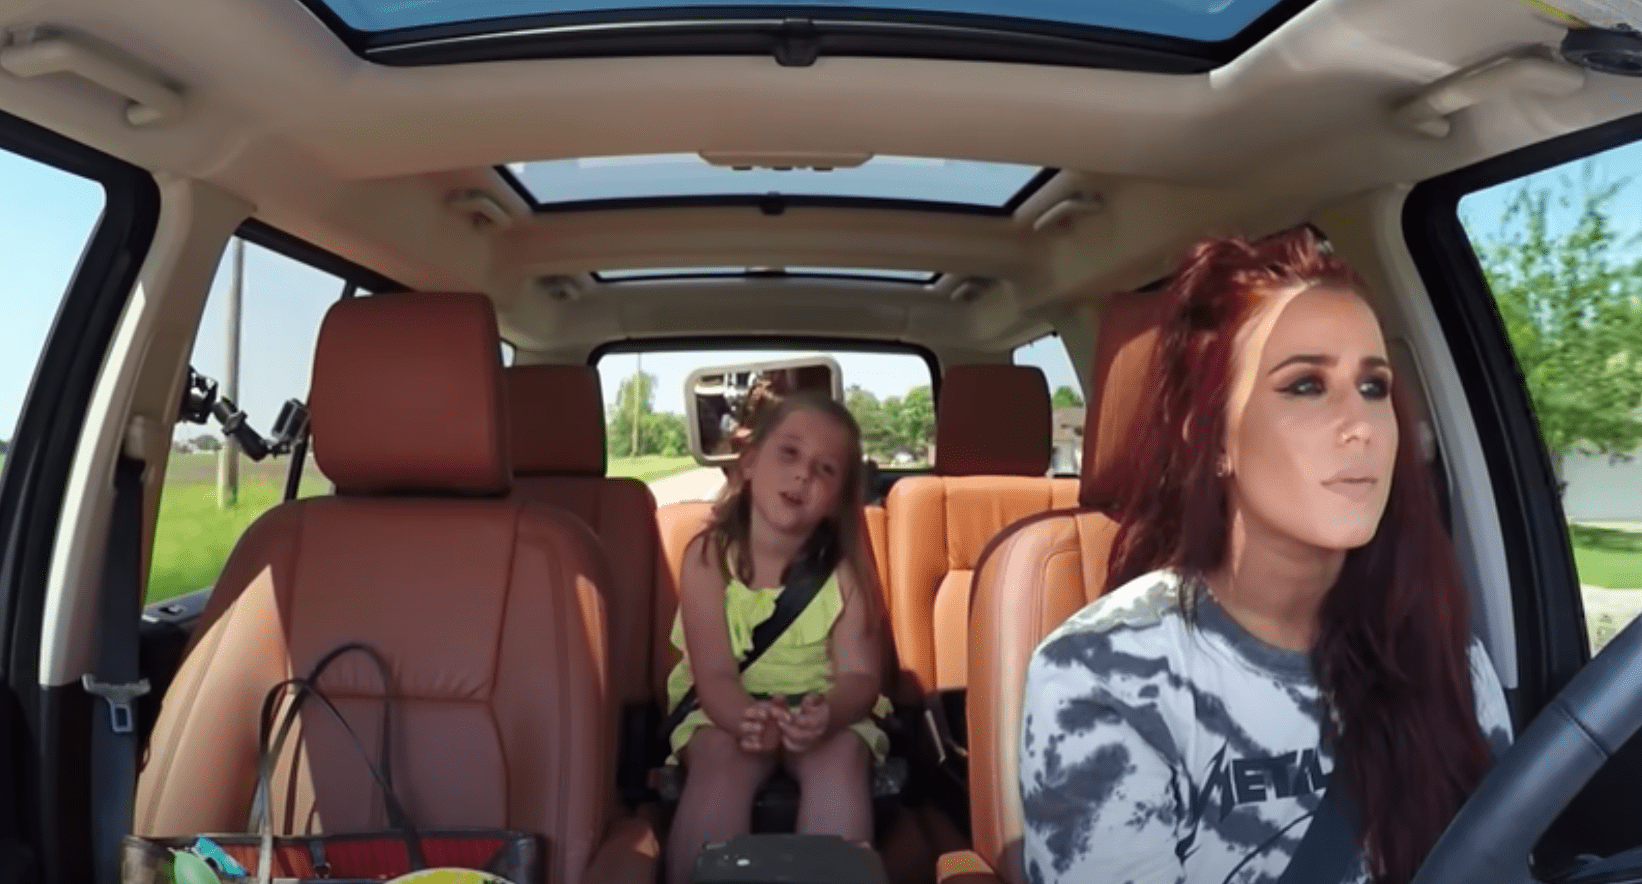 Image Source: Youtube/MTV's Teen Mom | 16 and Pregnant/MTV